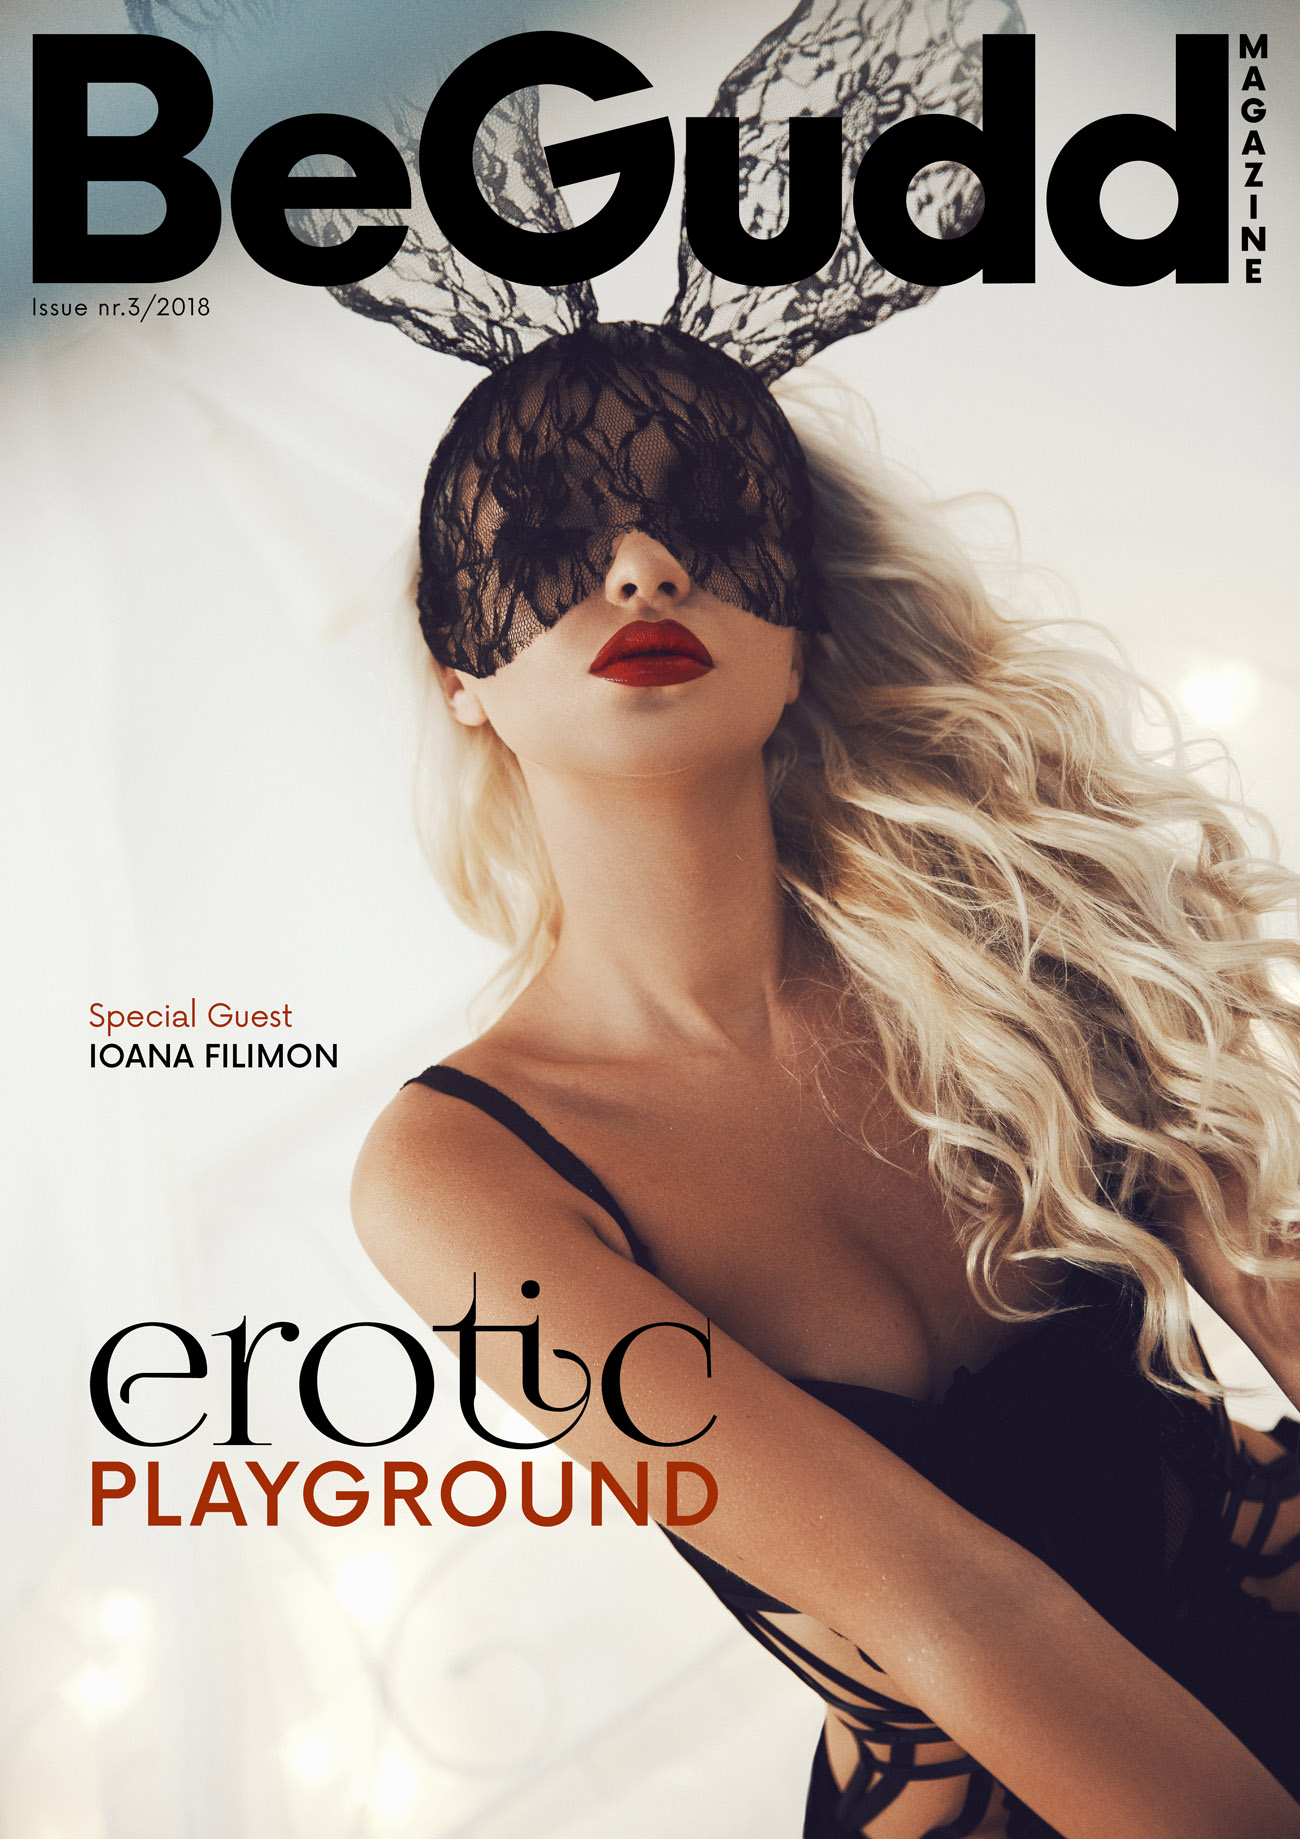 BeGudd magazine cover erotic glamour sexy free magazine issue 01